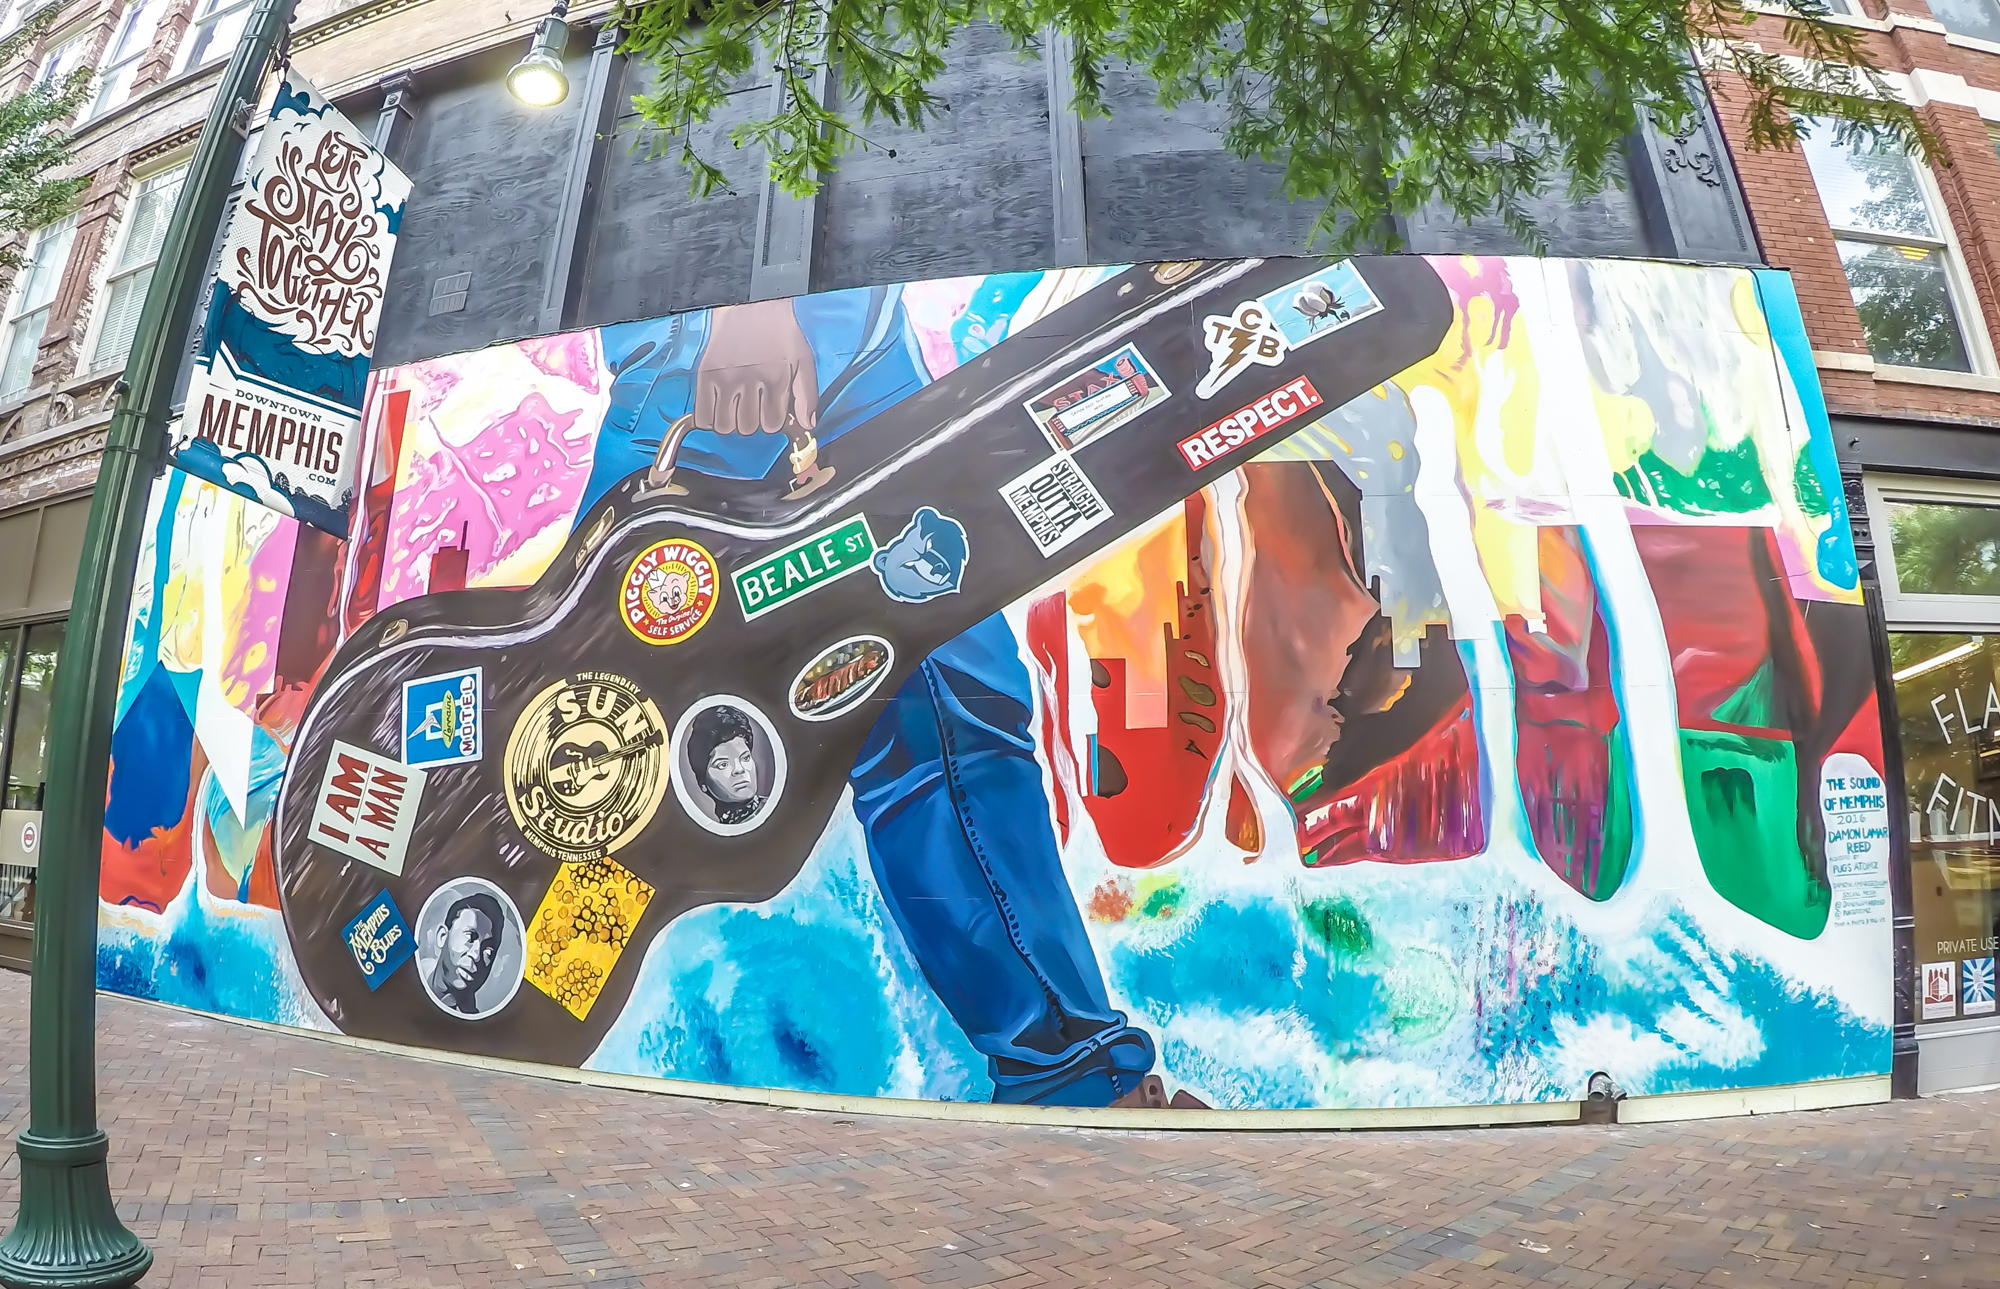 d56d5dca6ff6 200 Things to Do in Memphis for First-Time Visitors // A Local's Guide